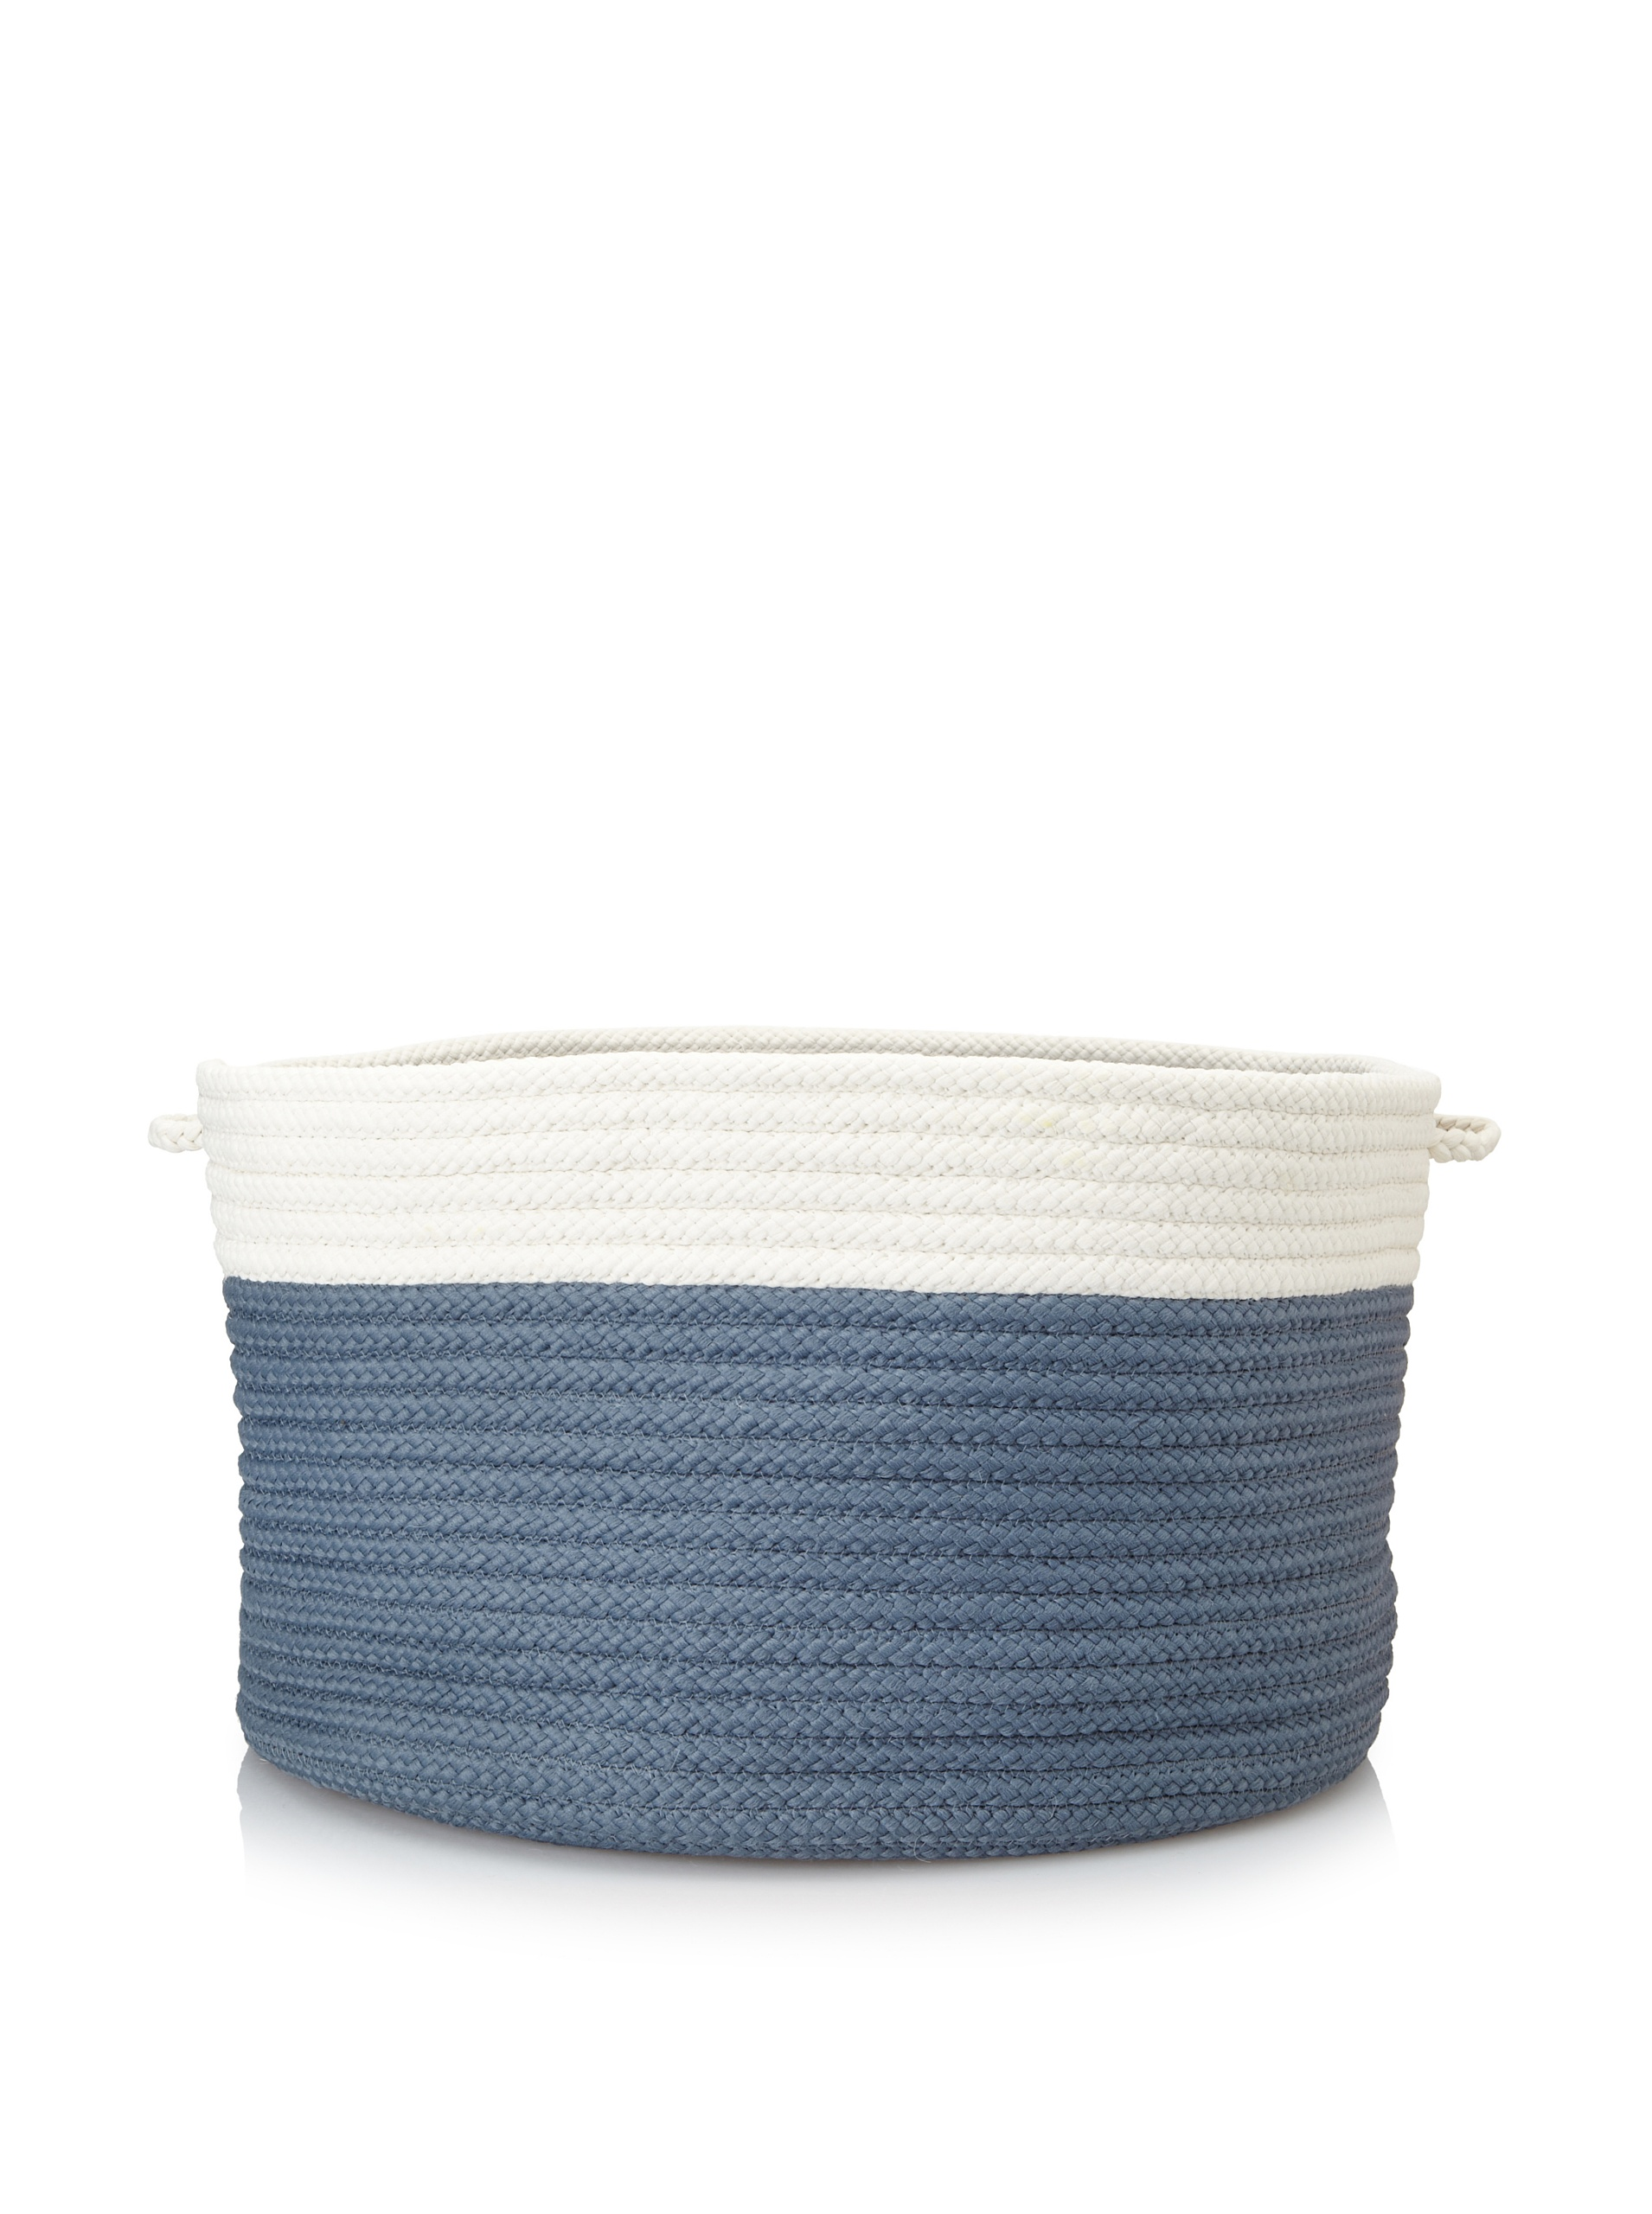 Colonial Mills Indoor/Outdoor Two-Toned Storage Basket, Lake Blue